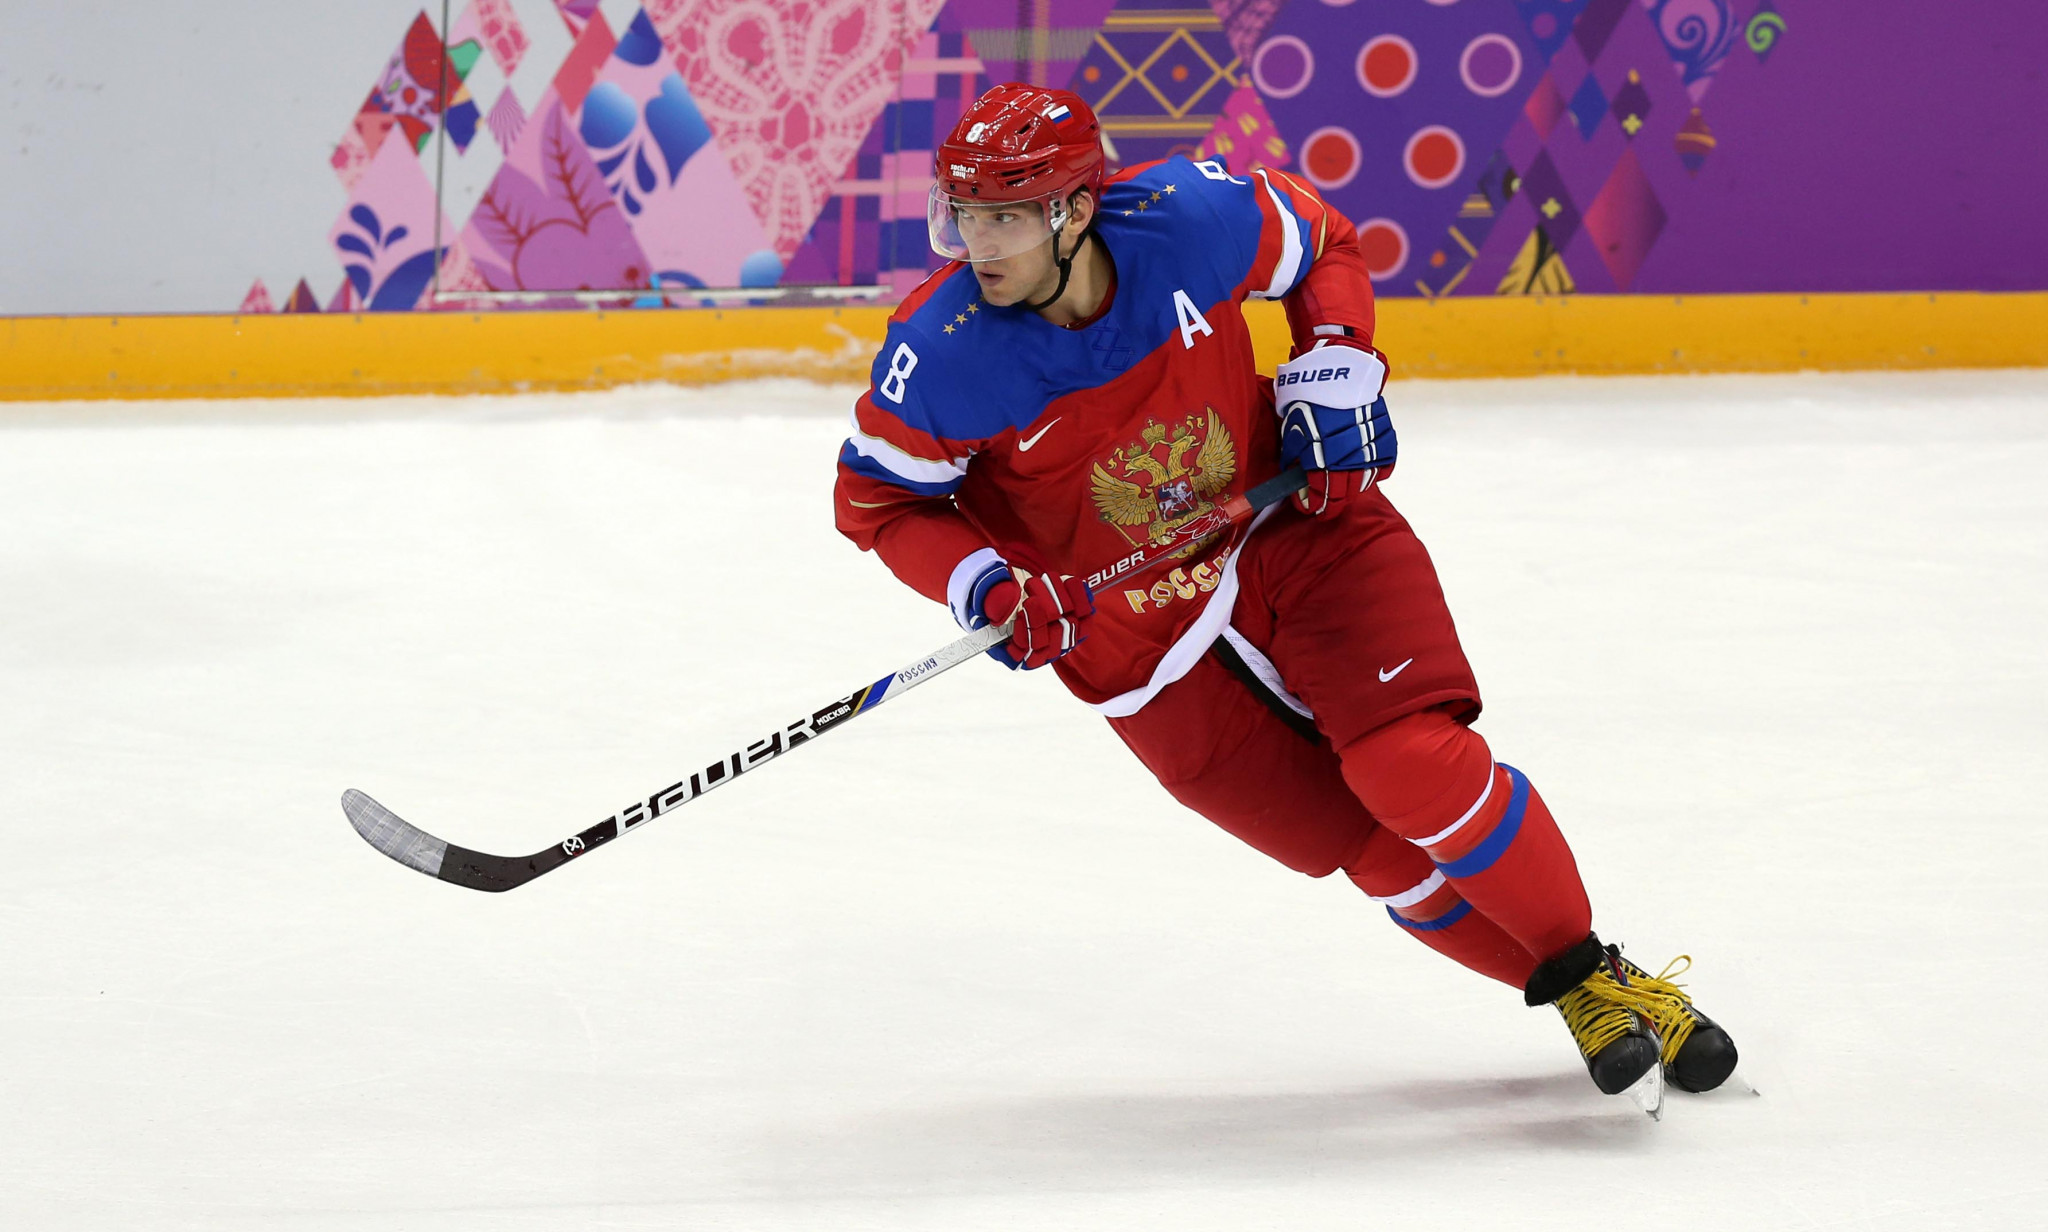 Russian symbols, like the eagle on the ice hockey's team jerseys at Sochi 2014, will not be allowed on any kit worn by athletes representing